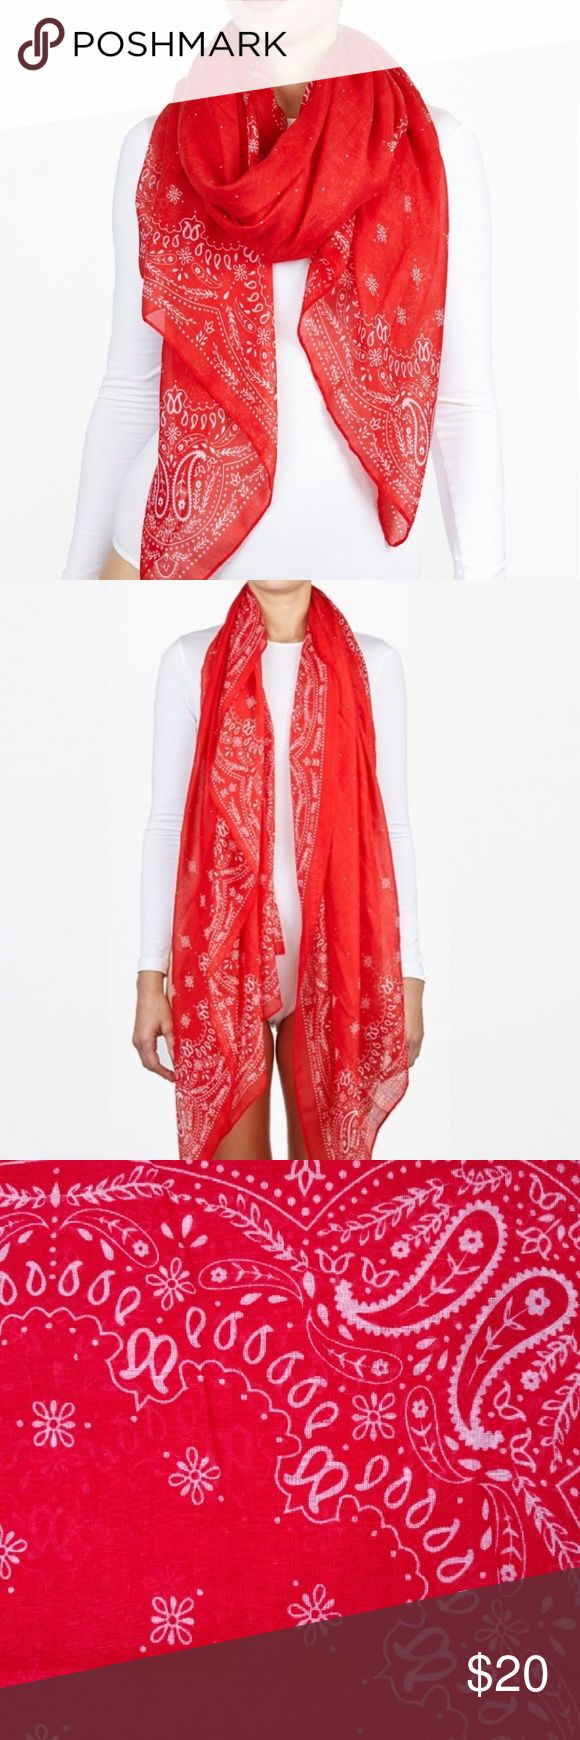 Adorable Red Bandanna Cozy Scarf This scarf is super cute and looks great with so many different outfit pairings. Good for all seasons and can be styled in many different ways. Accessories Scarves & Wraps